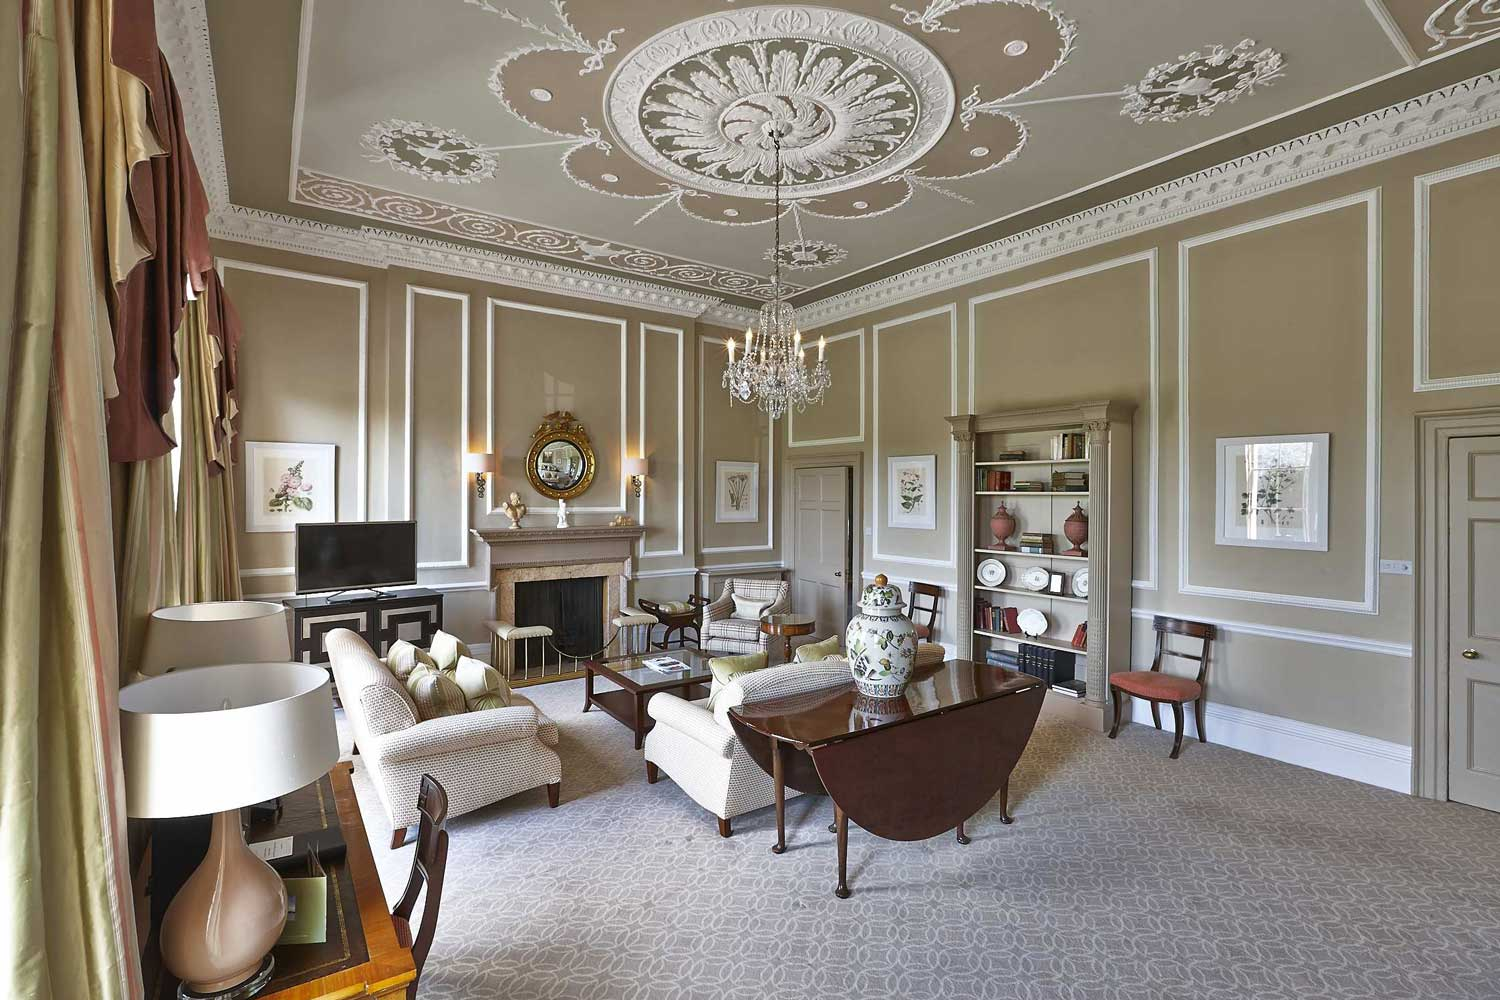 Royal Crescent Hotel suite living area